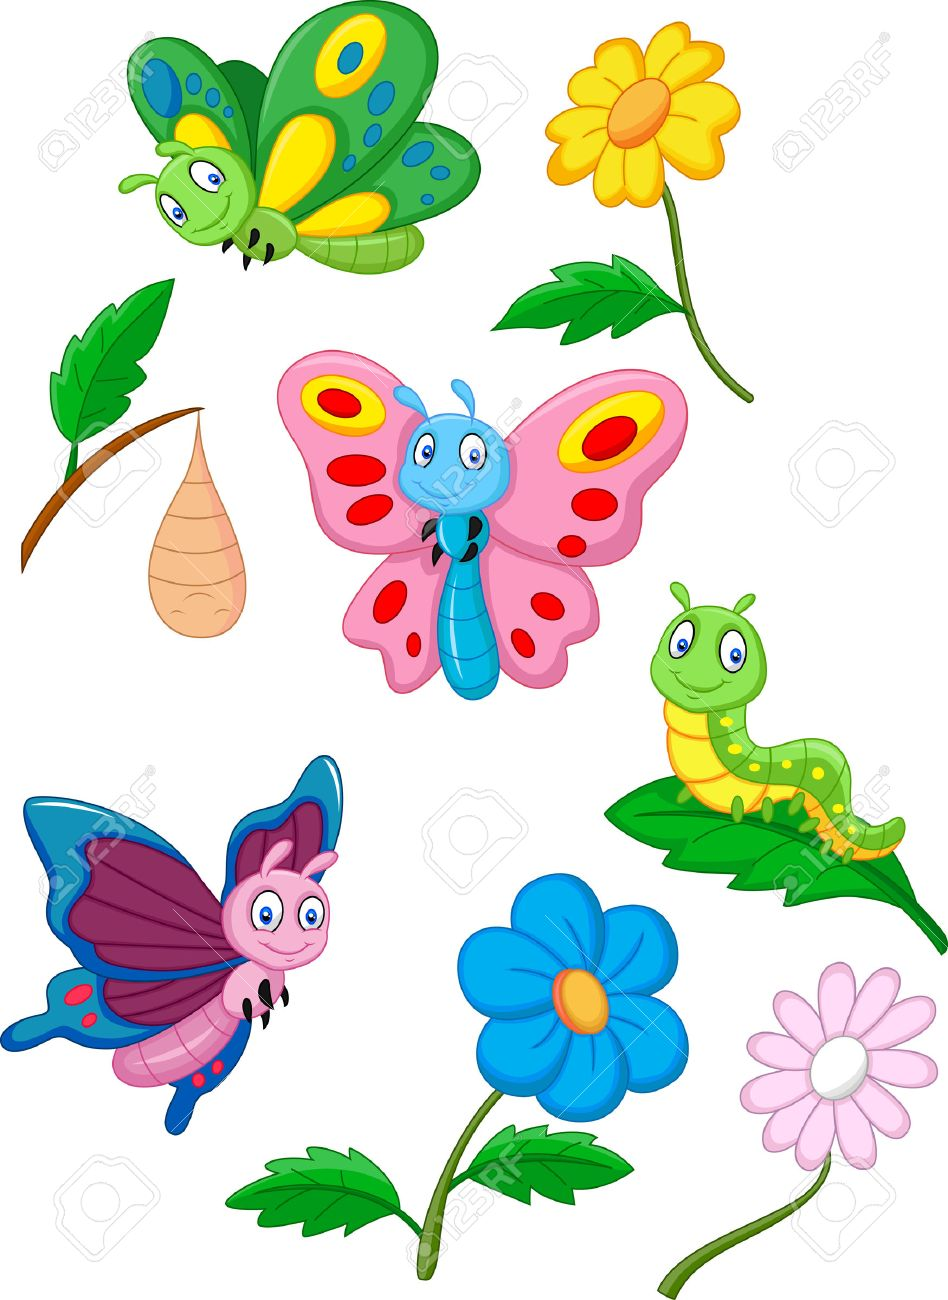 Cartoon Butterfly Caterpillar And Cocoon Royalty Free Cliparts Vectors And Stock Illustration Image 33367183